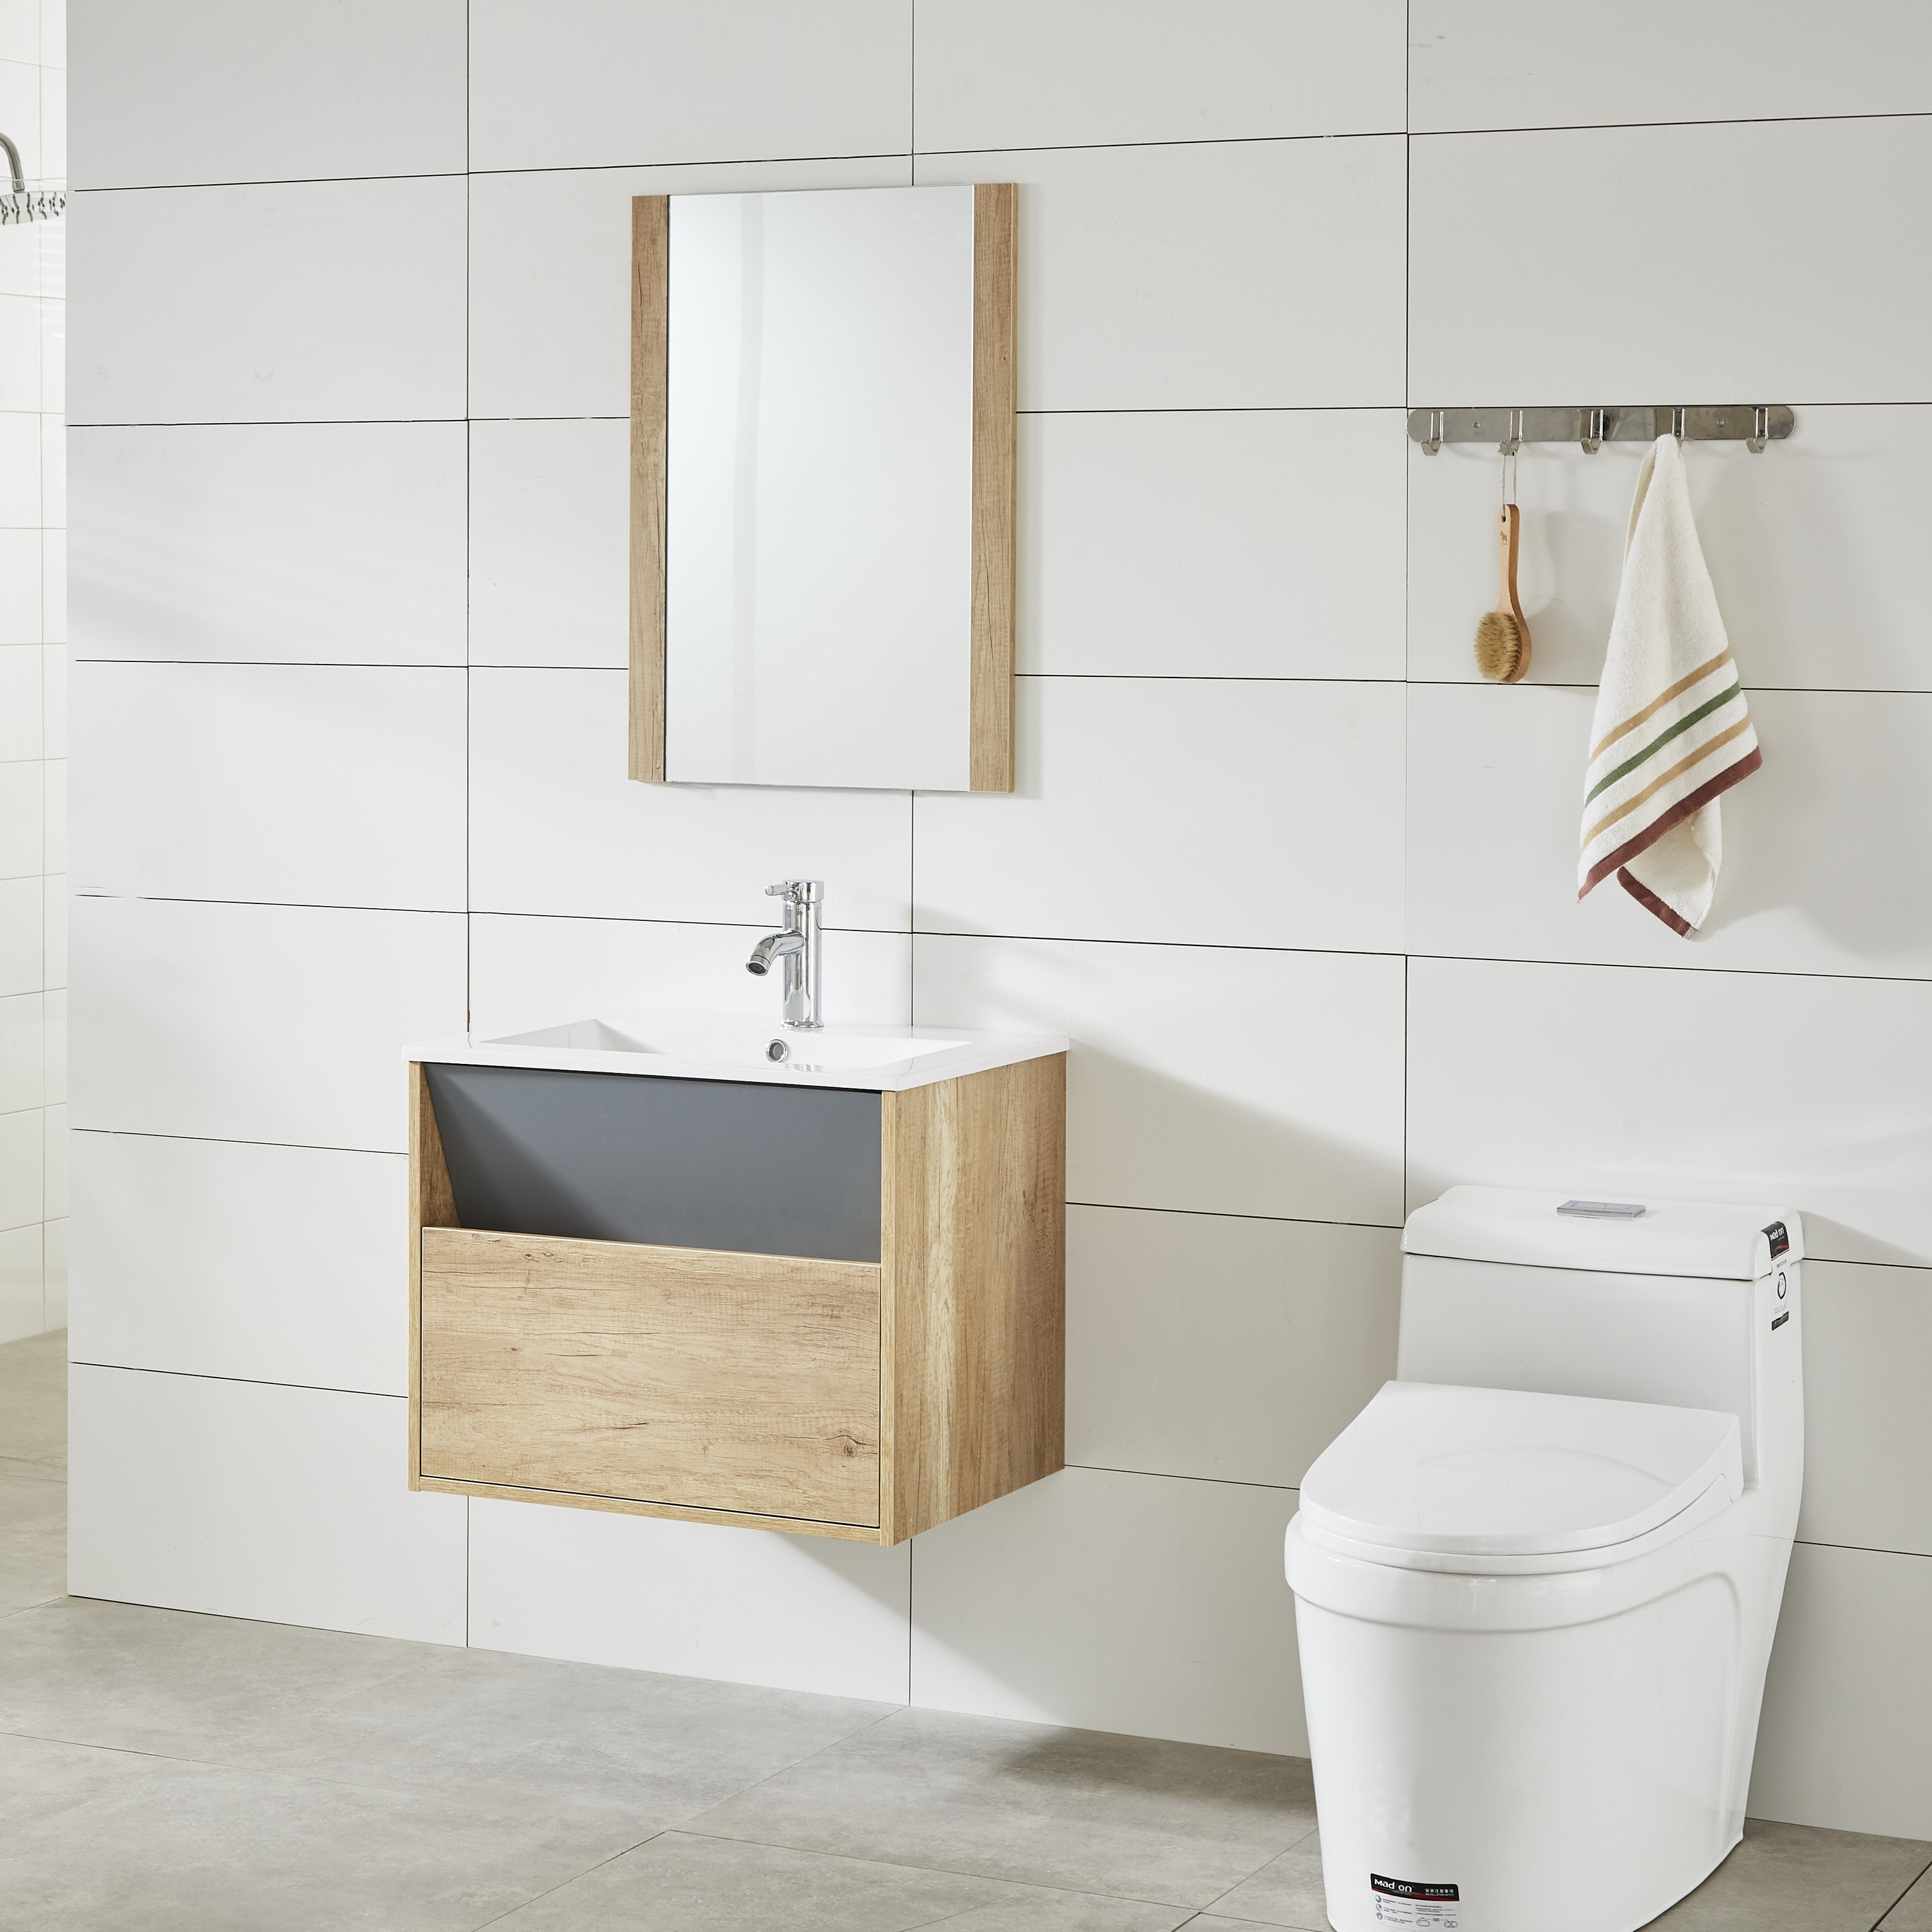 New Design Painting And Melamine Modern Bathroom Cabinet with Basin Vanity Set